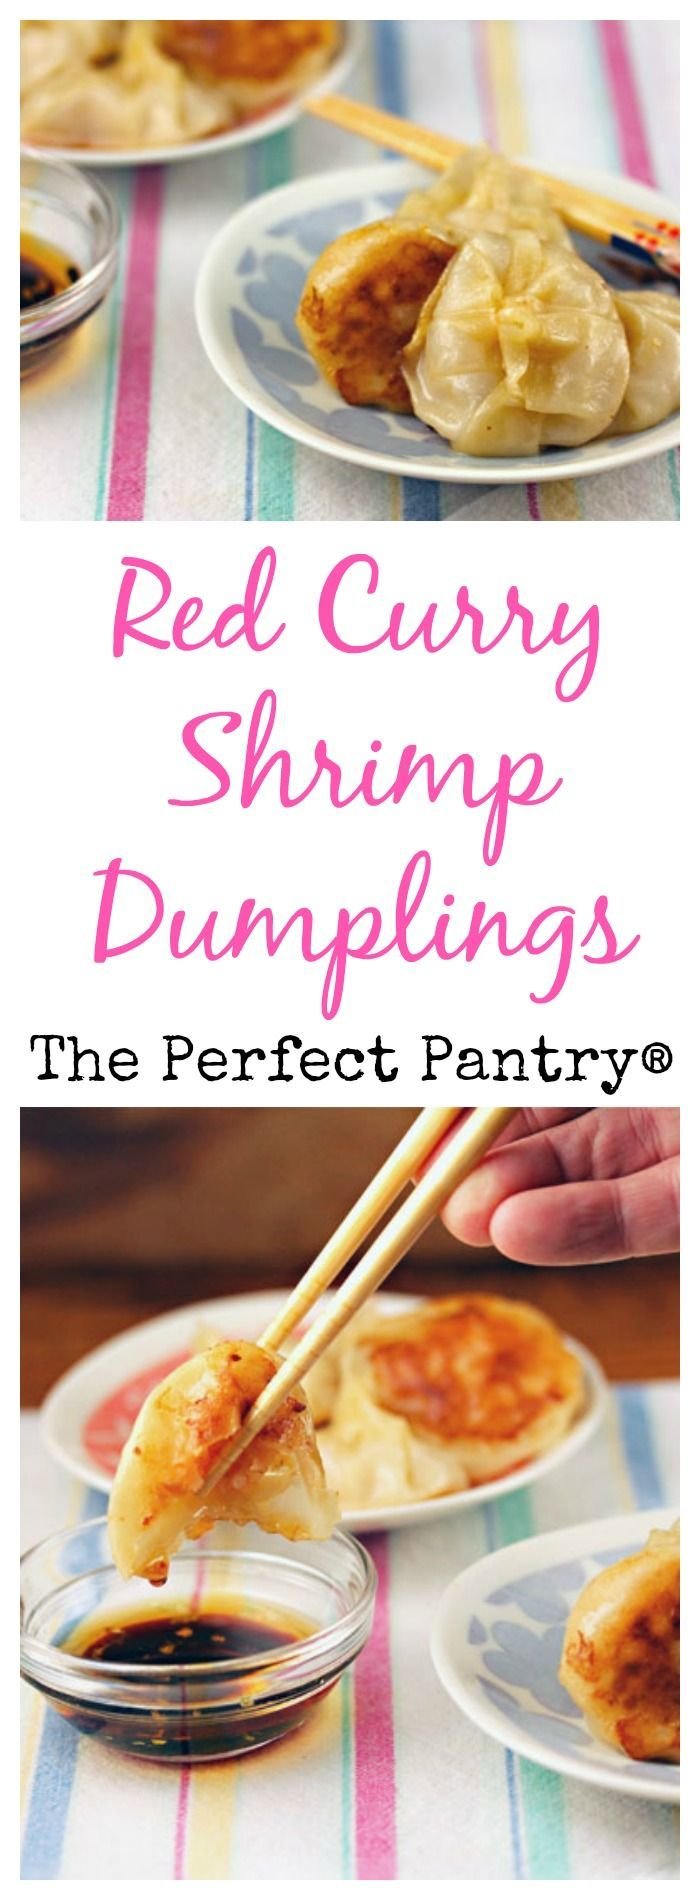 Red curry shrimp dumplings, an appetizer with a kick!